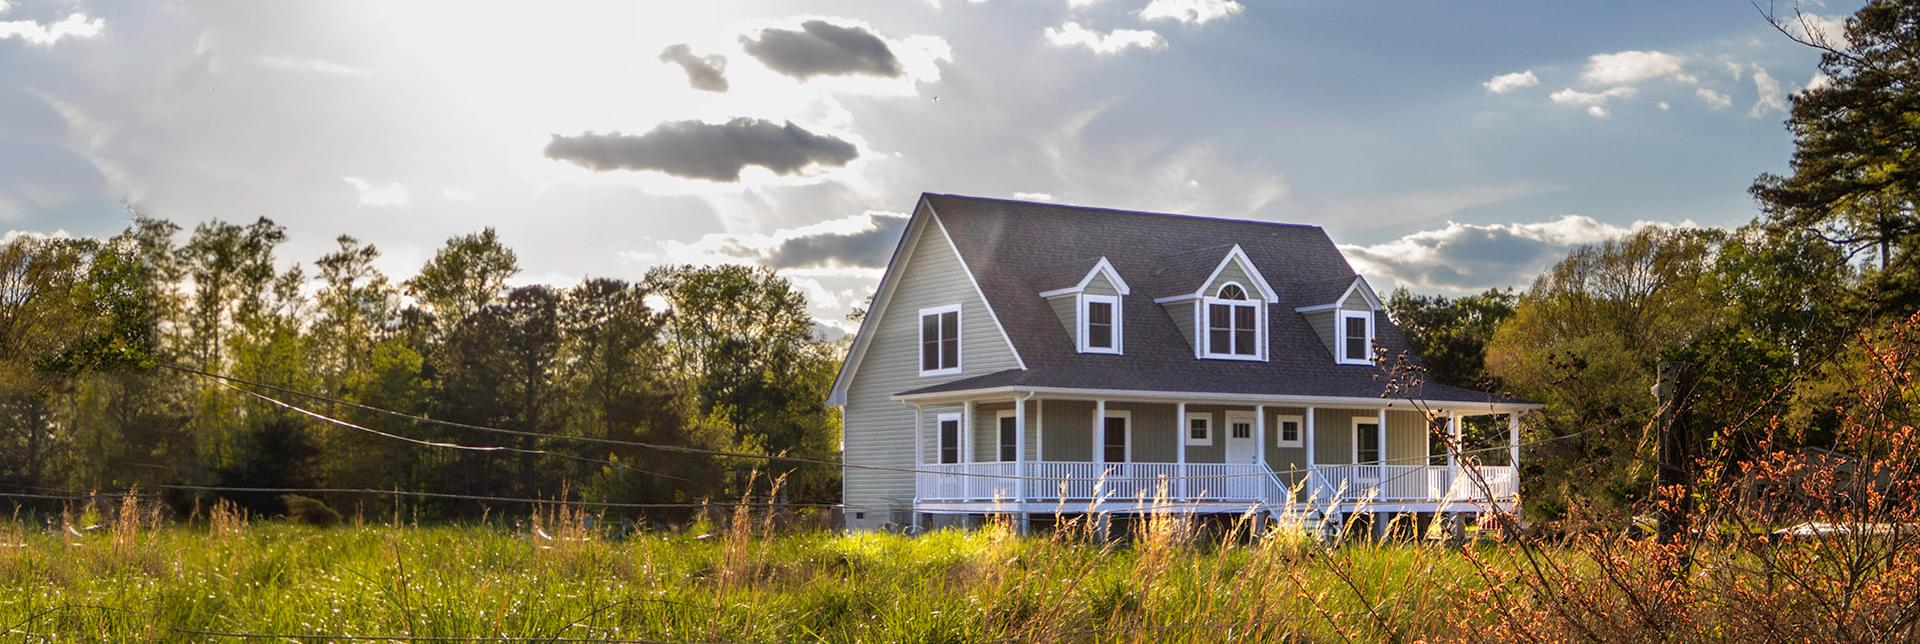 New Homes in Currituck County NC